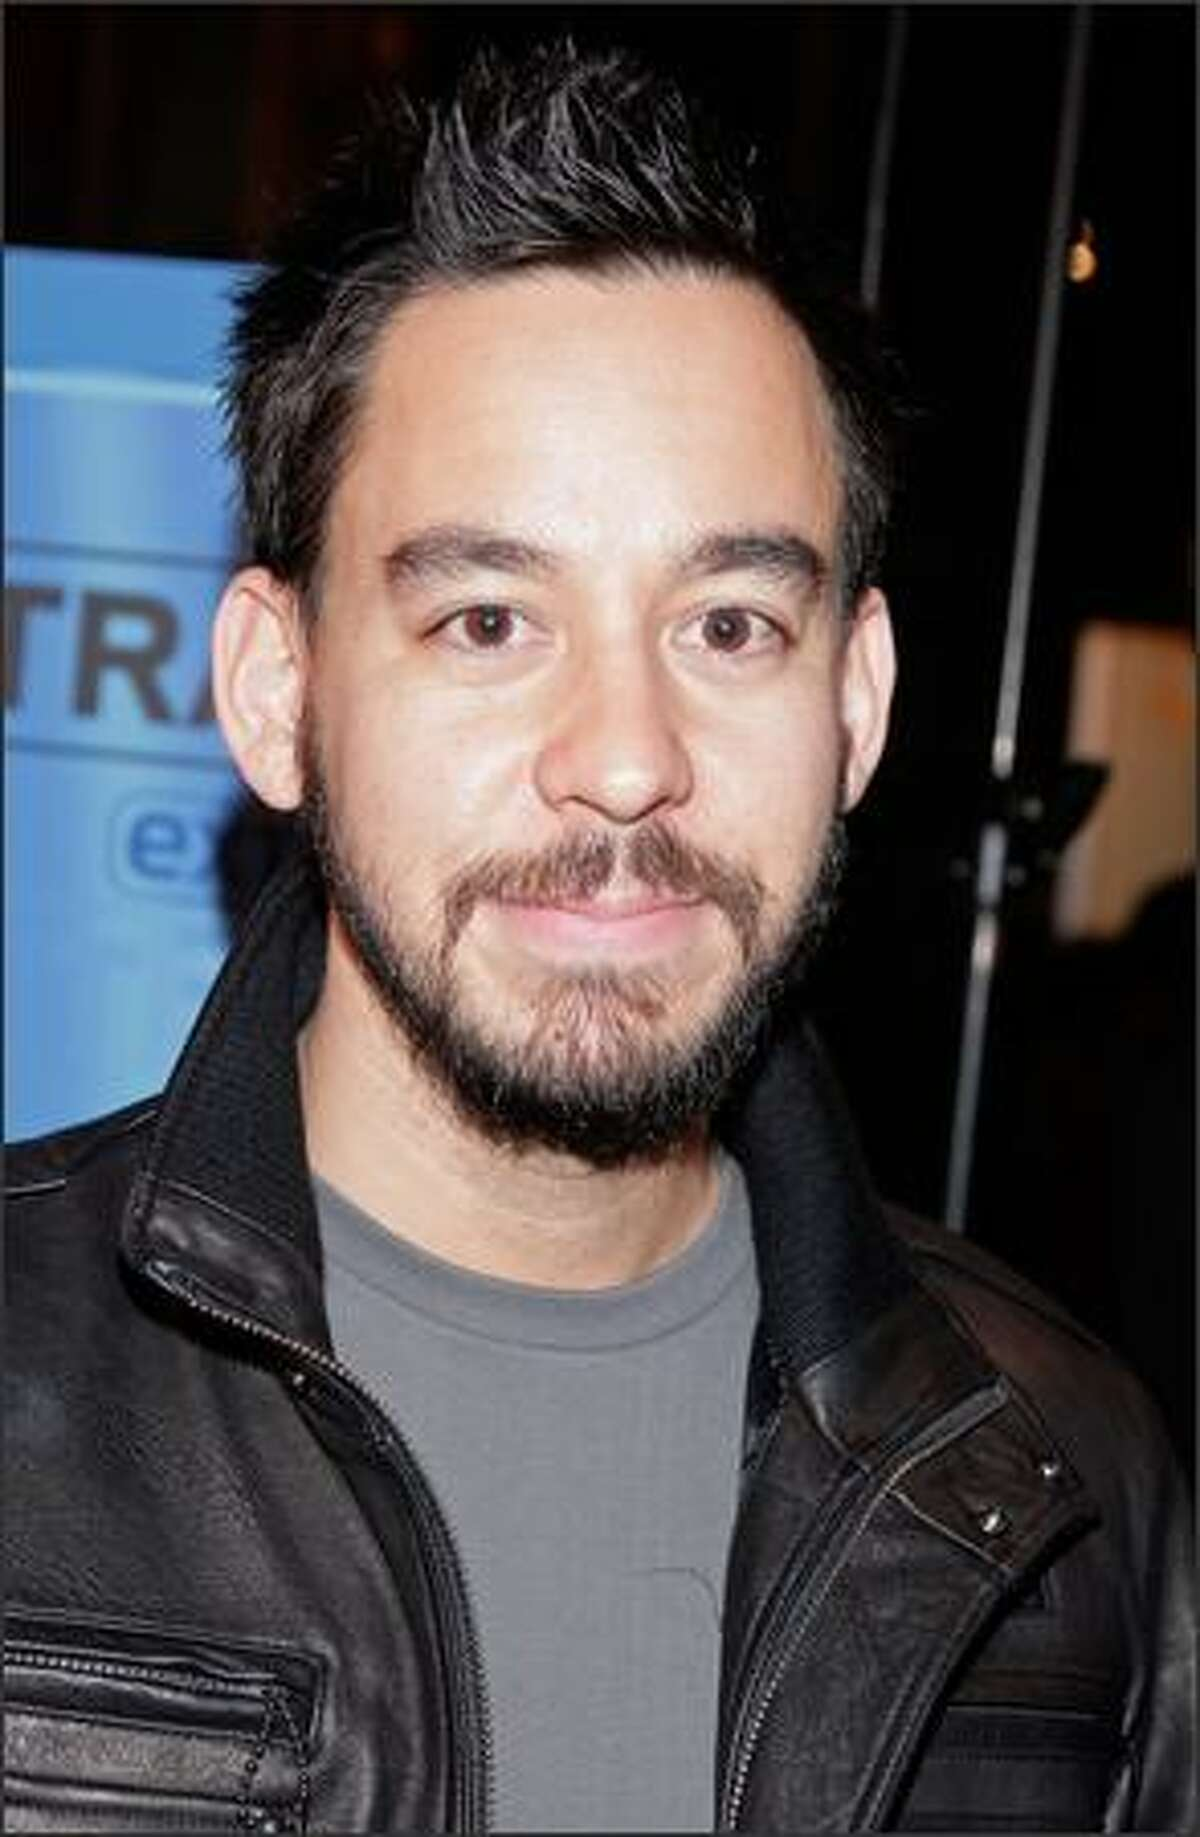 Musician Mike Shinoda poses after the 50th annual Grammy Award Nominations held at the Henry Fonda Music Box Theatre on Thursday in Hollywood, Calif. The 50th annual Grammy Awards will air live on CBS Feb. 10, 2008.